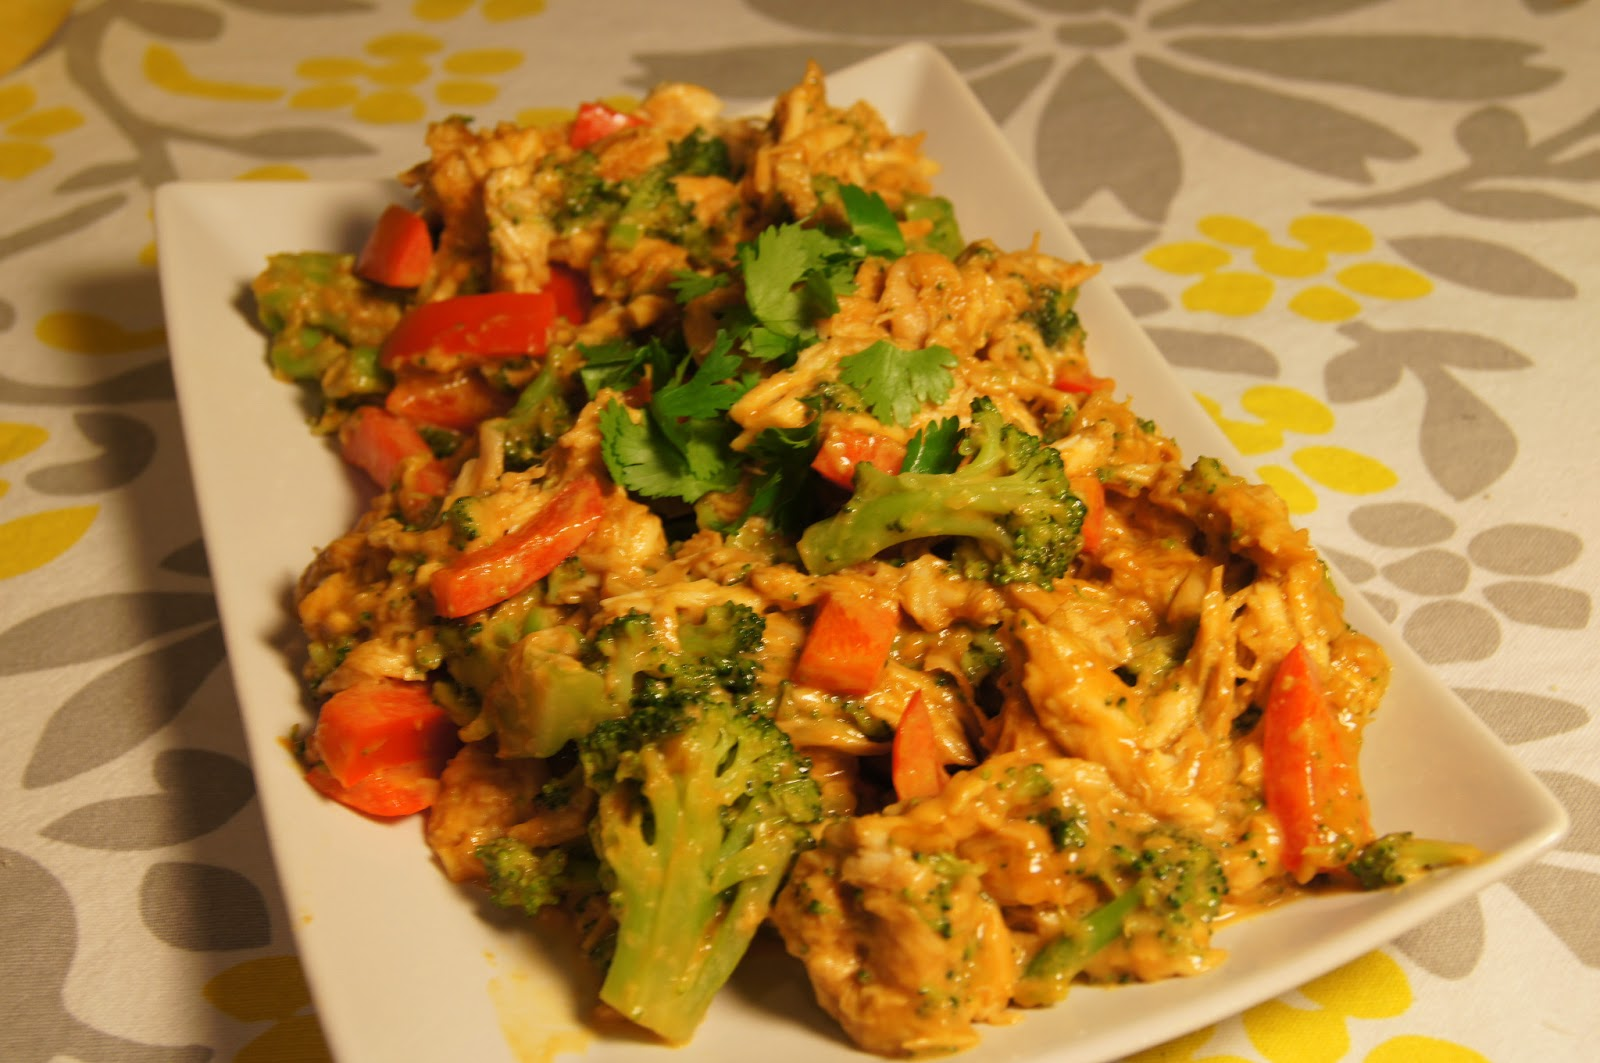 Chicken, Broccoli, and Red Bell Peppers with Peanut Butter Dressing ...